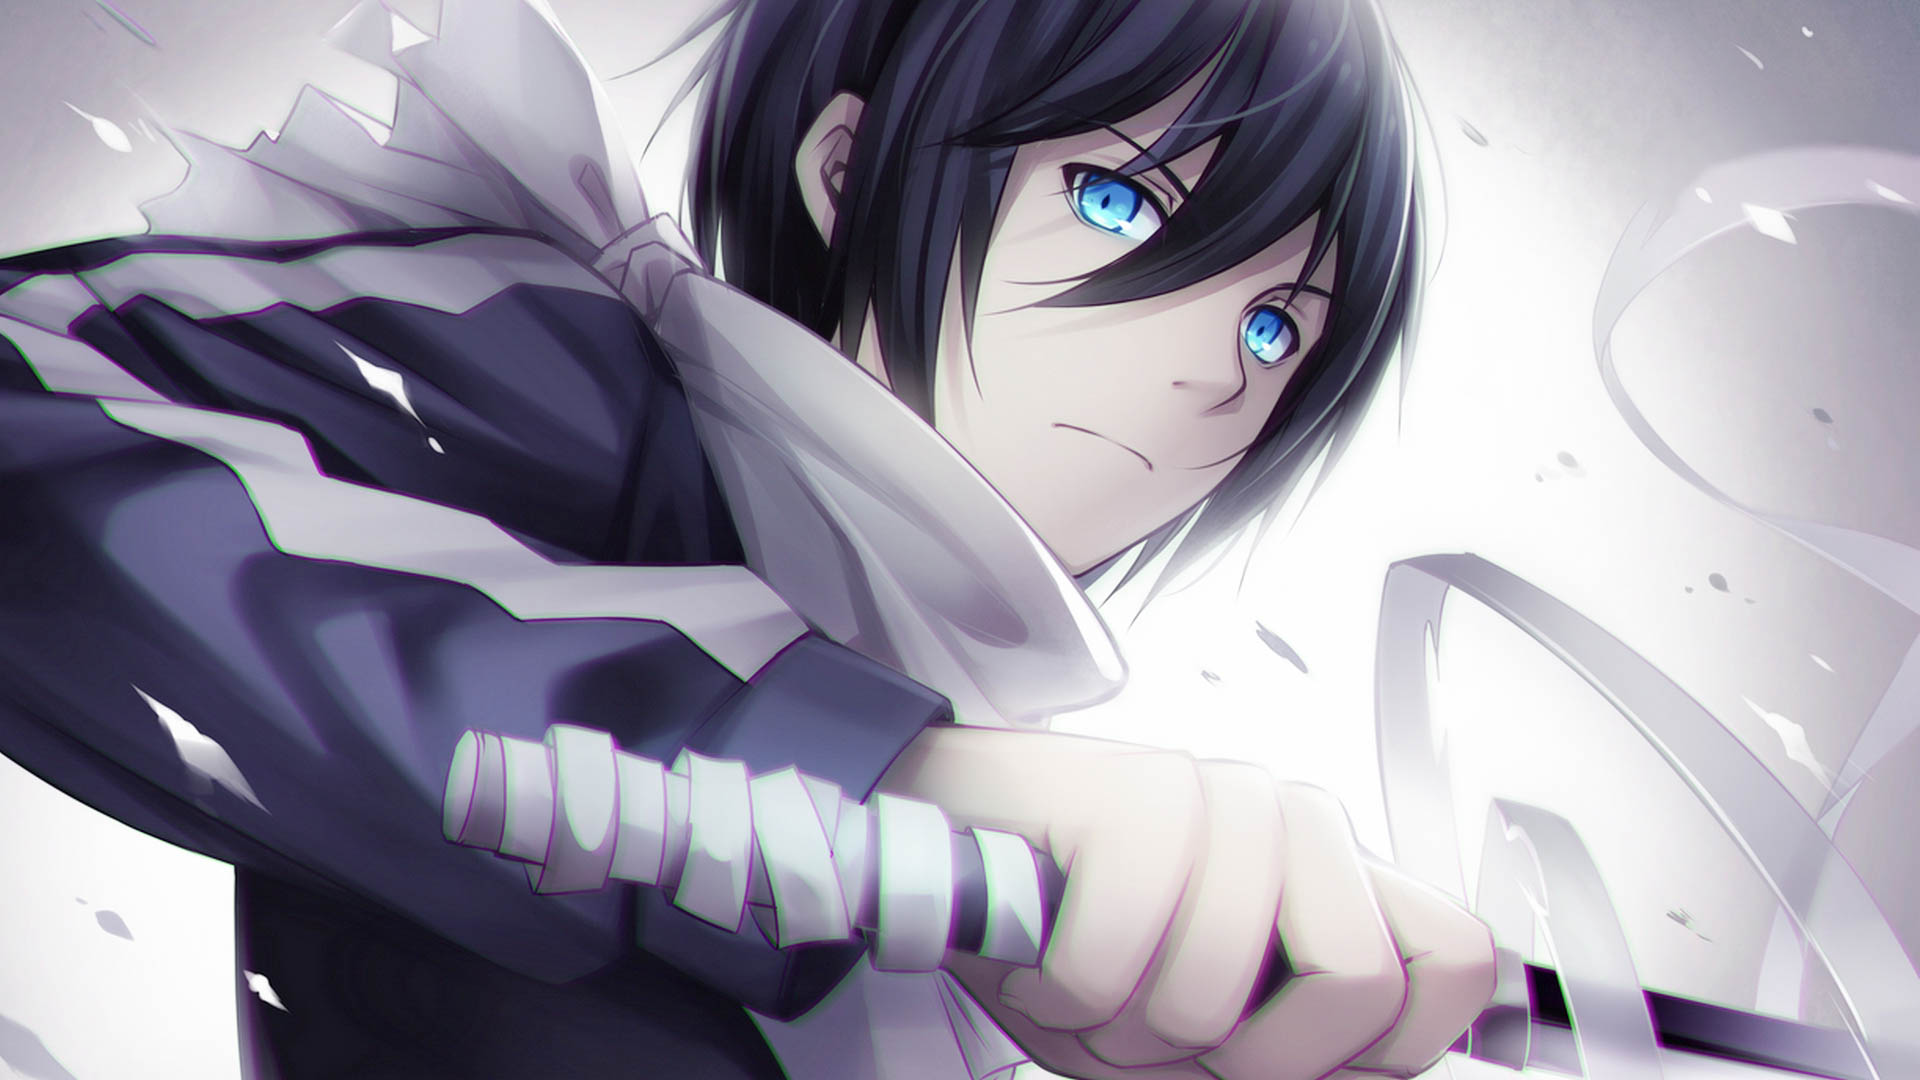 Anime noragami amazing wallpapers and images in high - High quality anime pictures ...